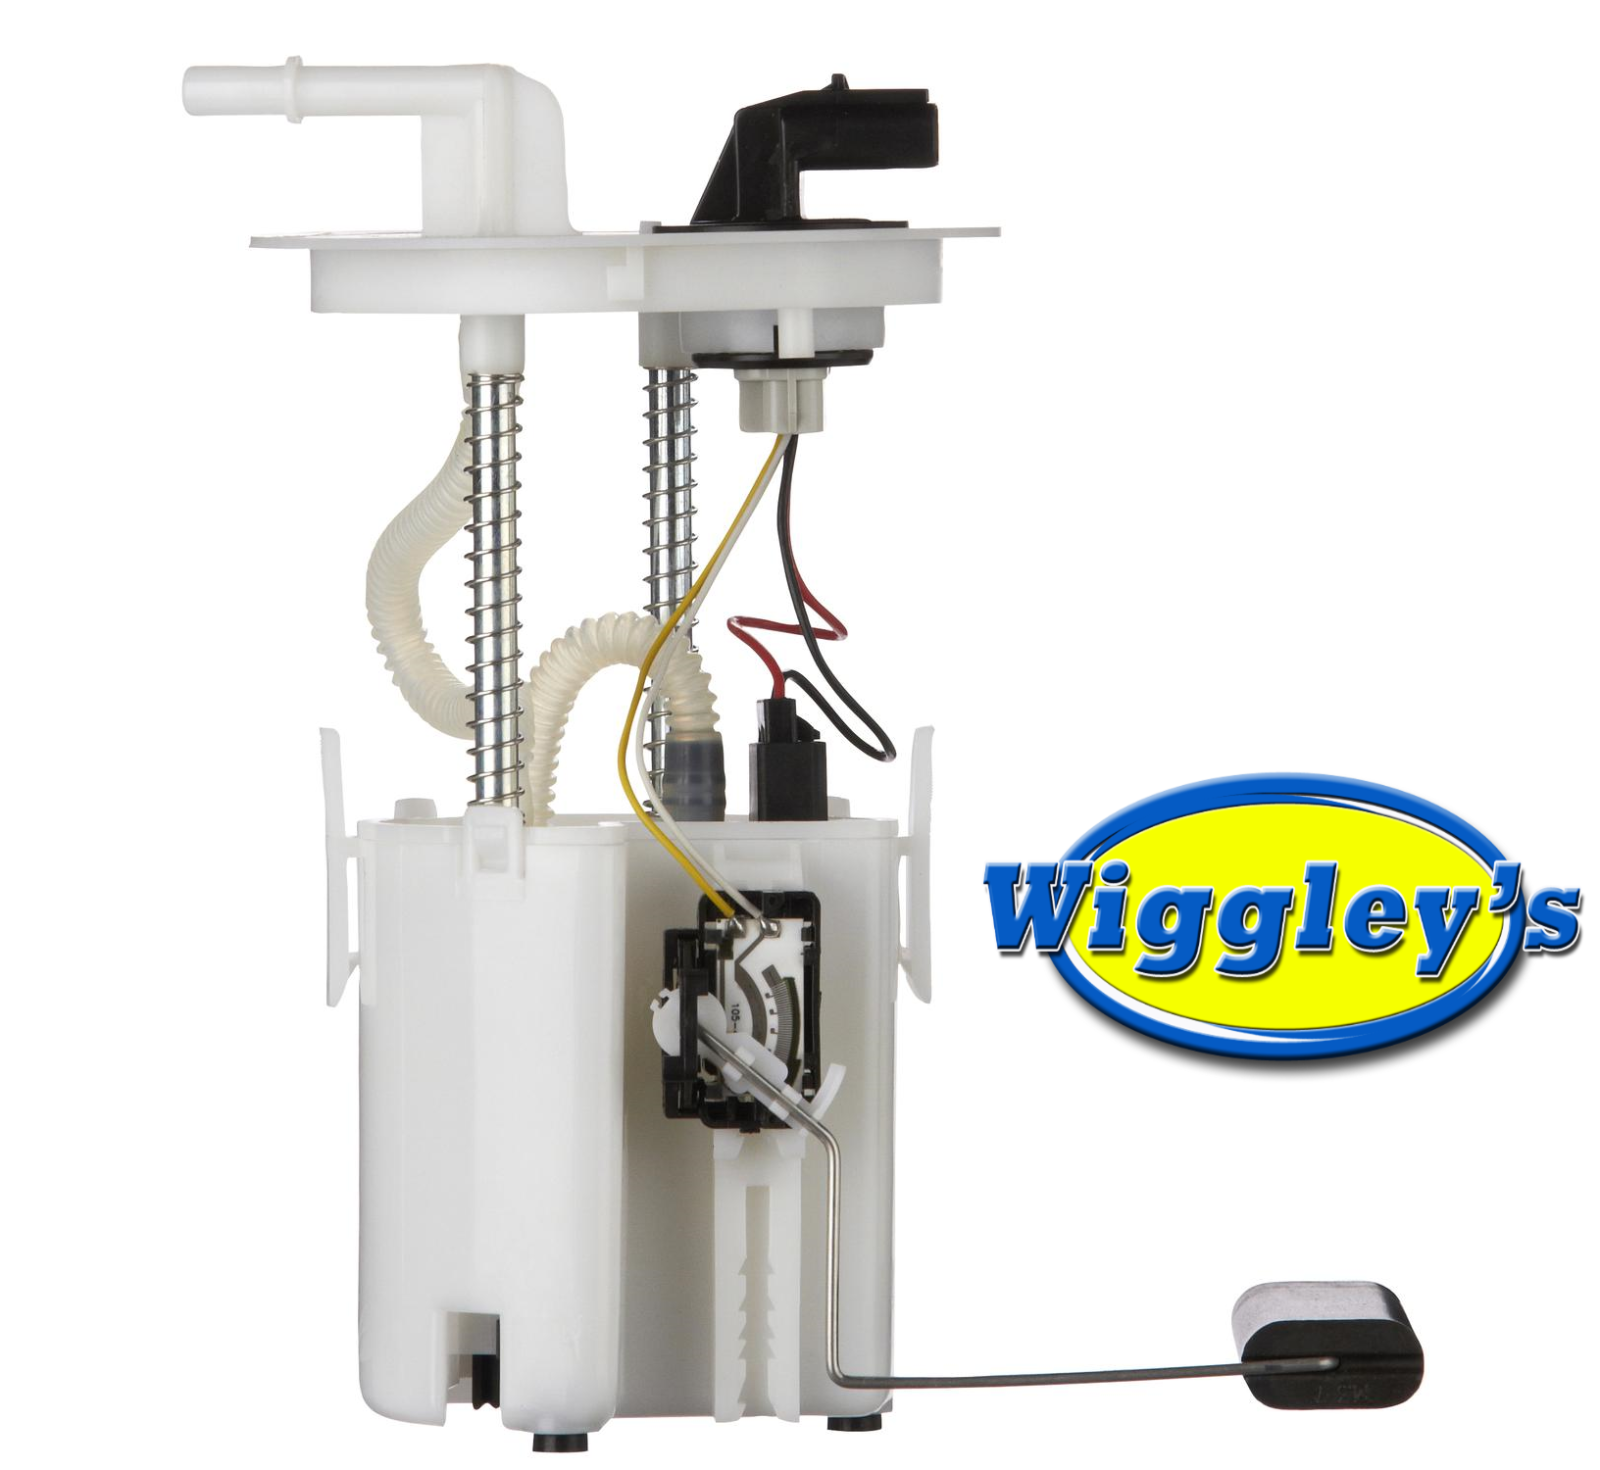 FUEL PUMP MODULE ASSEMBLY 150027 FOR 04 05 06 FORD TAURUS MERCURY SABLE 3.0L